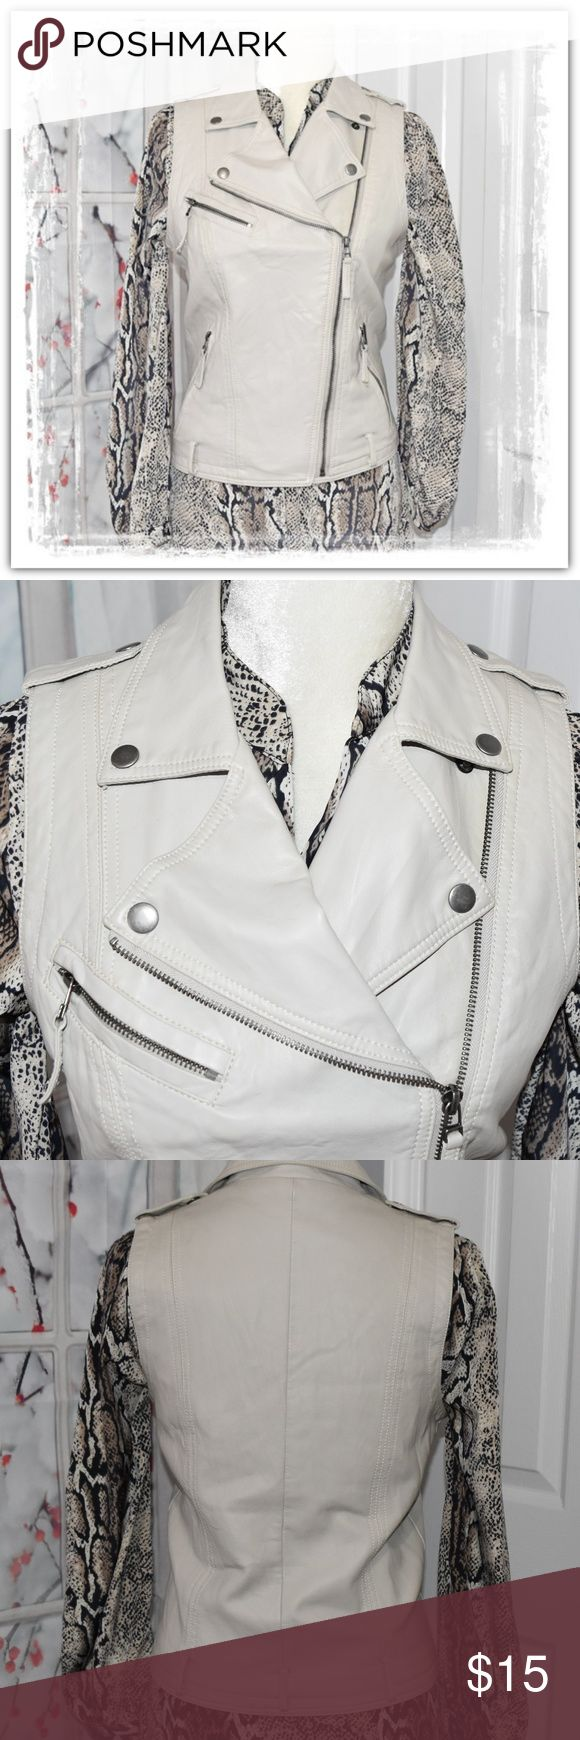 Pepe Jeans Leather Vest Cute Light tan leather vest embellished with great snaps, zippers, and pockets. This piece will coordinate nicely with so many things from jeans and sweaters to fabulous dresses. There is some aging to this leather even though the tags are attached. It's mainly along the main zipper and you'll see where I included a photo of it. This was purchased on consignment and I didn't even notice it at first. I've priced it accordingly. She is awesome and I love the color…